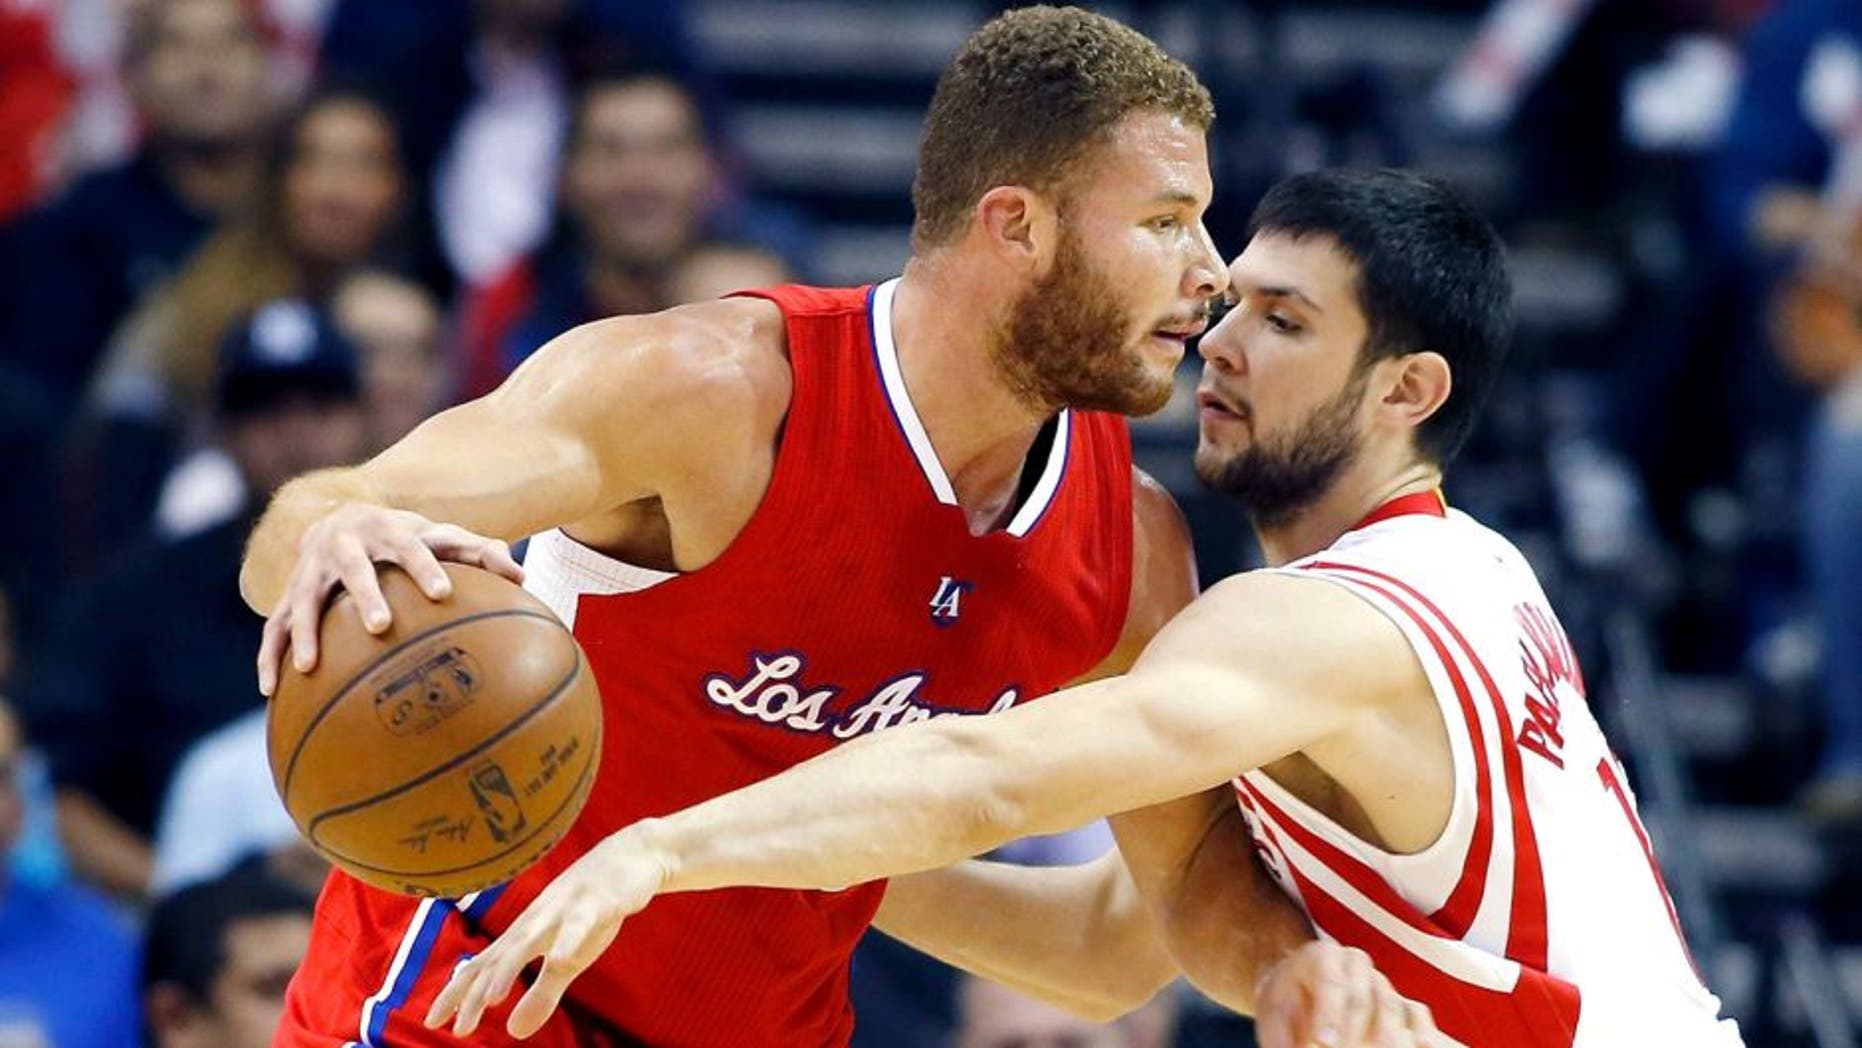 HOUSTON, TX - NOVEMBER 28: Blake Griffin #32 of the Los Angeles Clippers drives with the basketball against Kostas Papanikolaou #16 of the Houston Rockets during their game at the Toyota Center on November 28, 2014 in Houston, Texas. NOTE TO USER: User expressly acknowledges and agrees that, by downloading and/or using this photograph, user is consenting to the terms and conditions of the Getty Images License Agreement. (Photo by Scott Halleran/Getty Images)